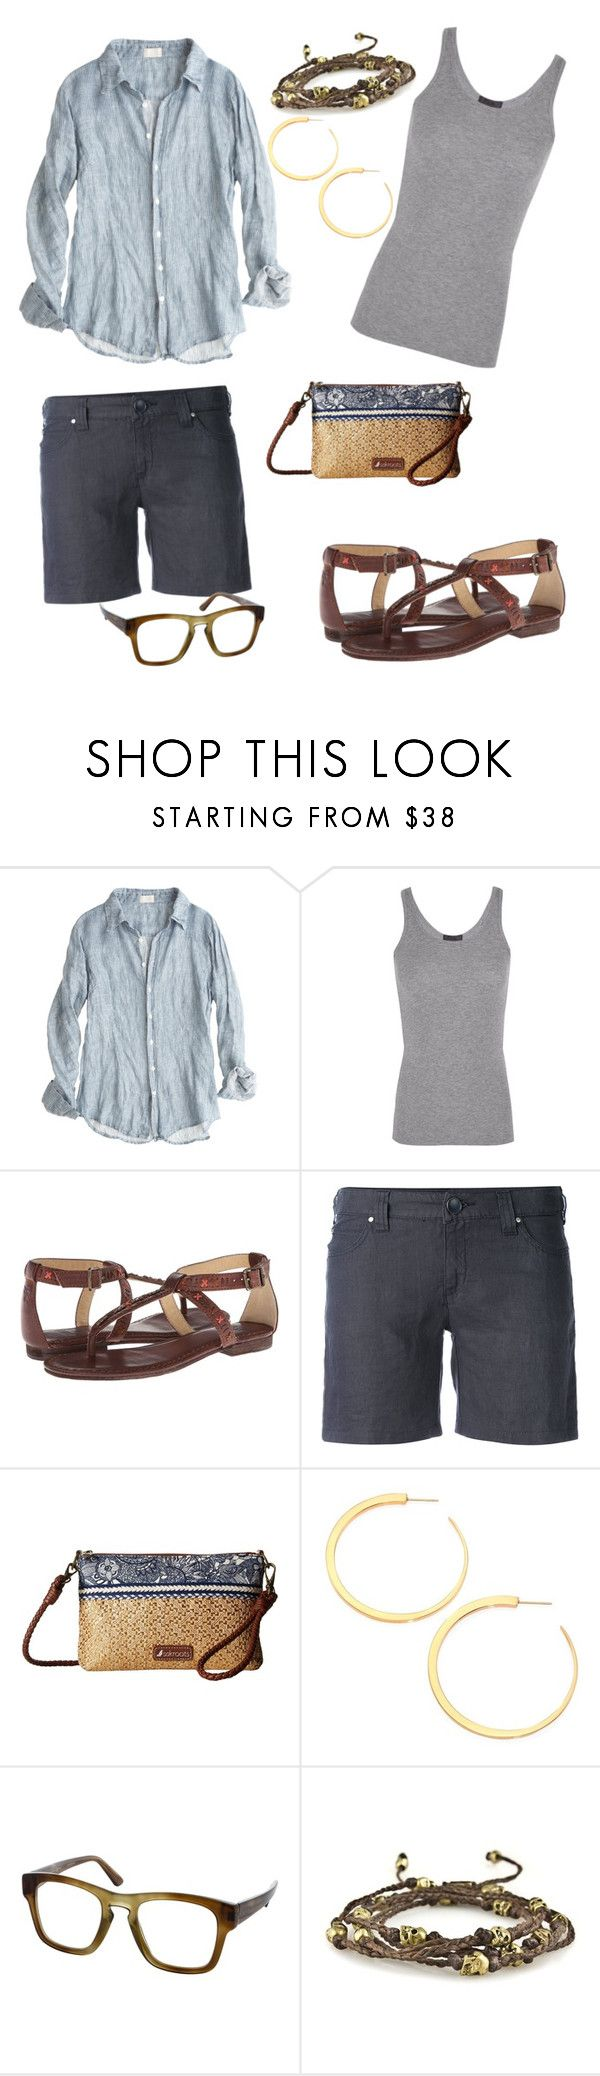 """this is me"" by wallaceschade ❤ liked on Polyvore featuring CP Shades, ATM by Anthony Thomas Melillo, Frye, Armani Jeans, Sakroots, Vita Fede and Gucci"